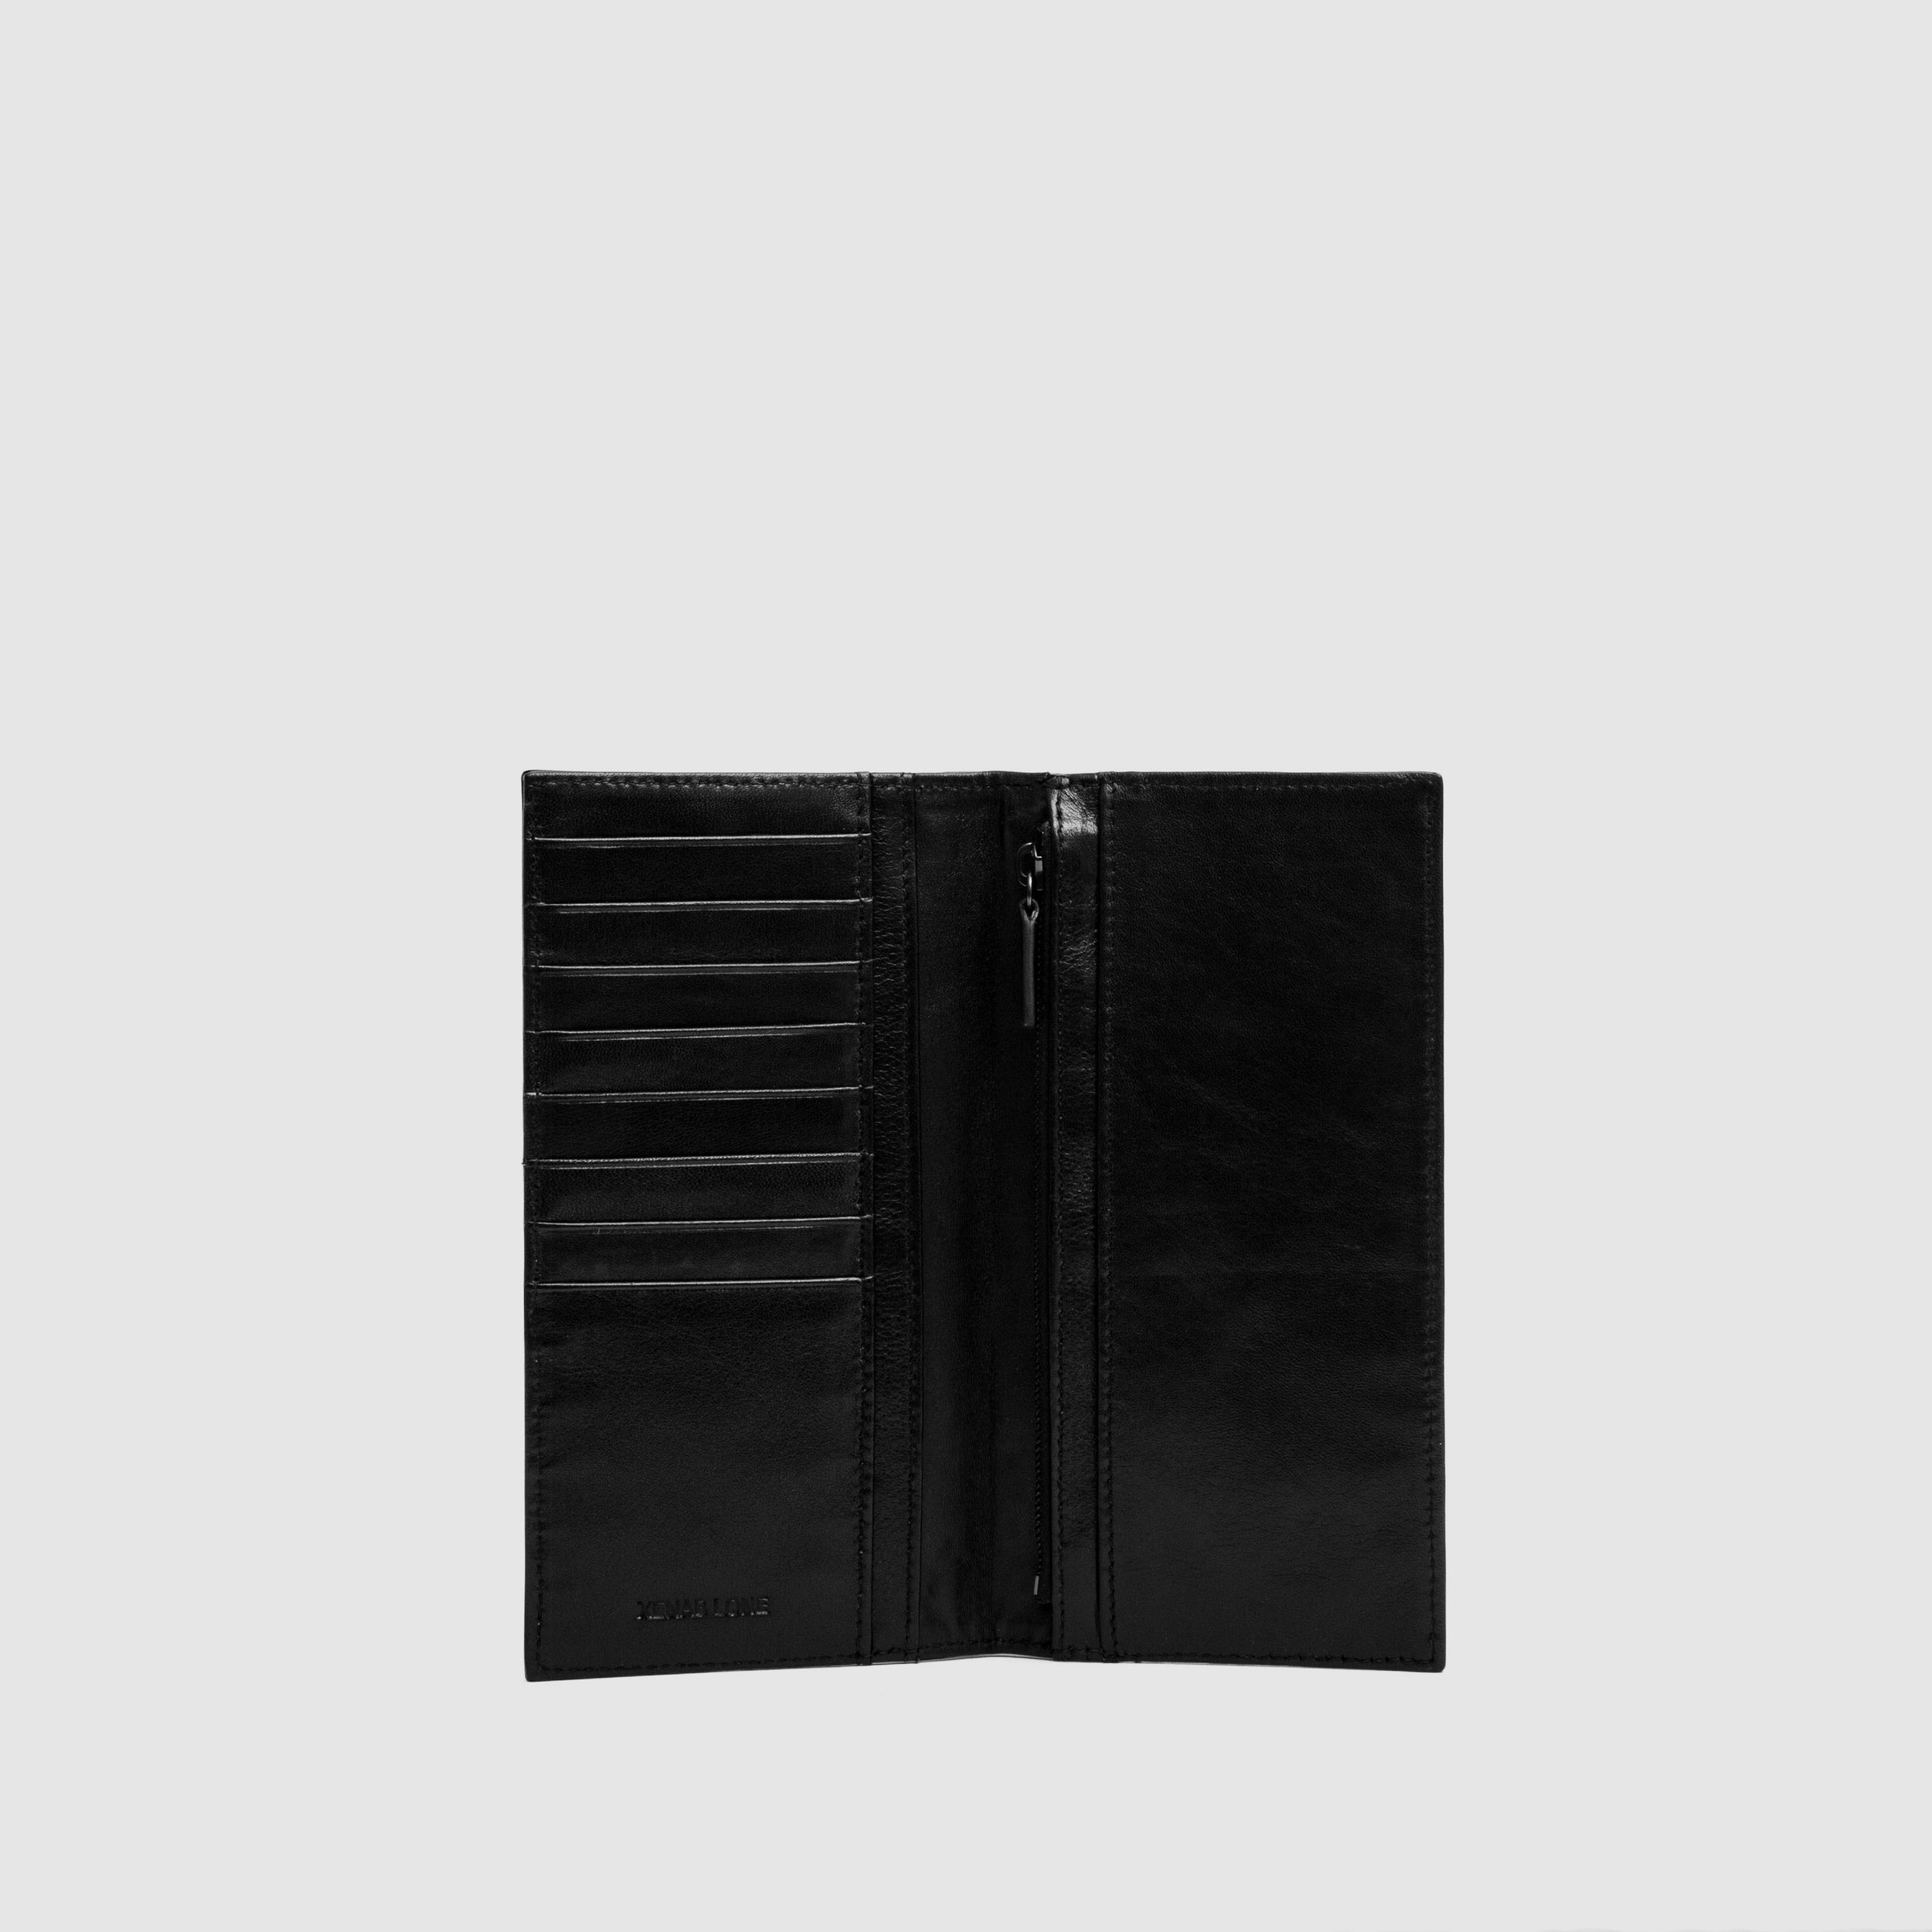 Wallets&Pouches_0002s_0000s_0004_Layer 24.jpg